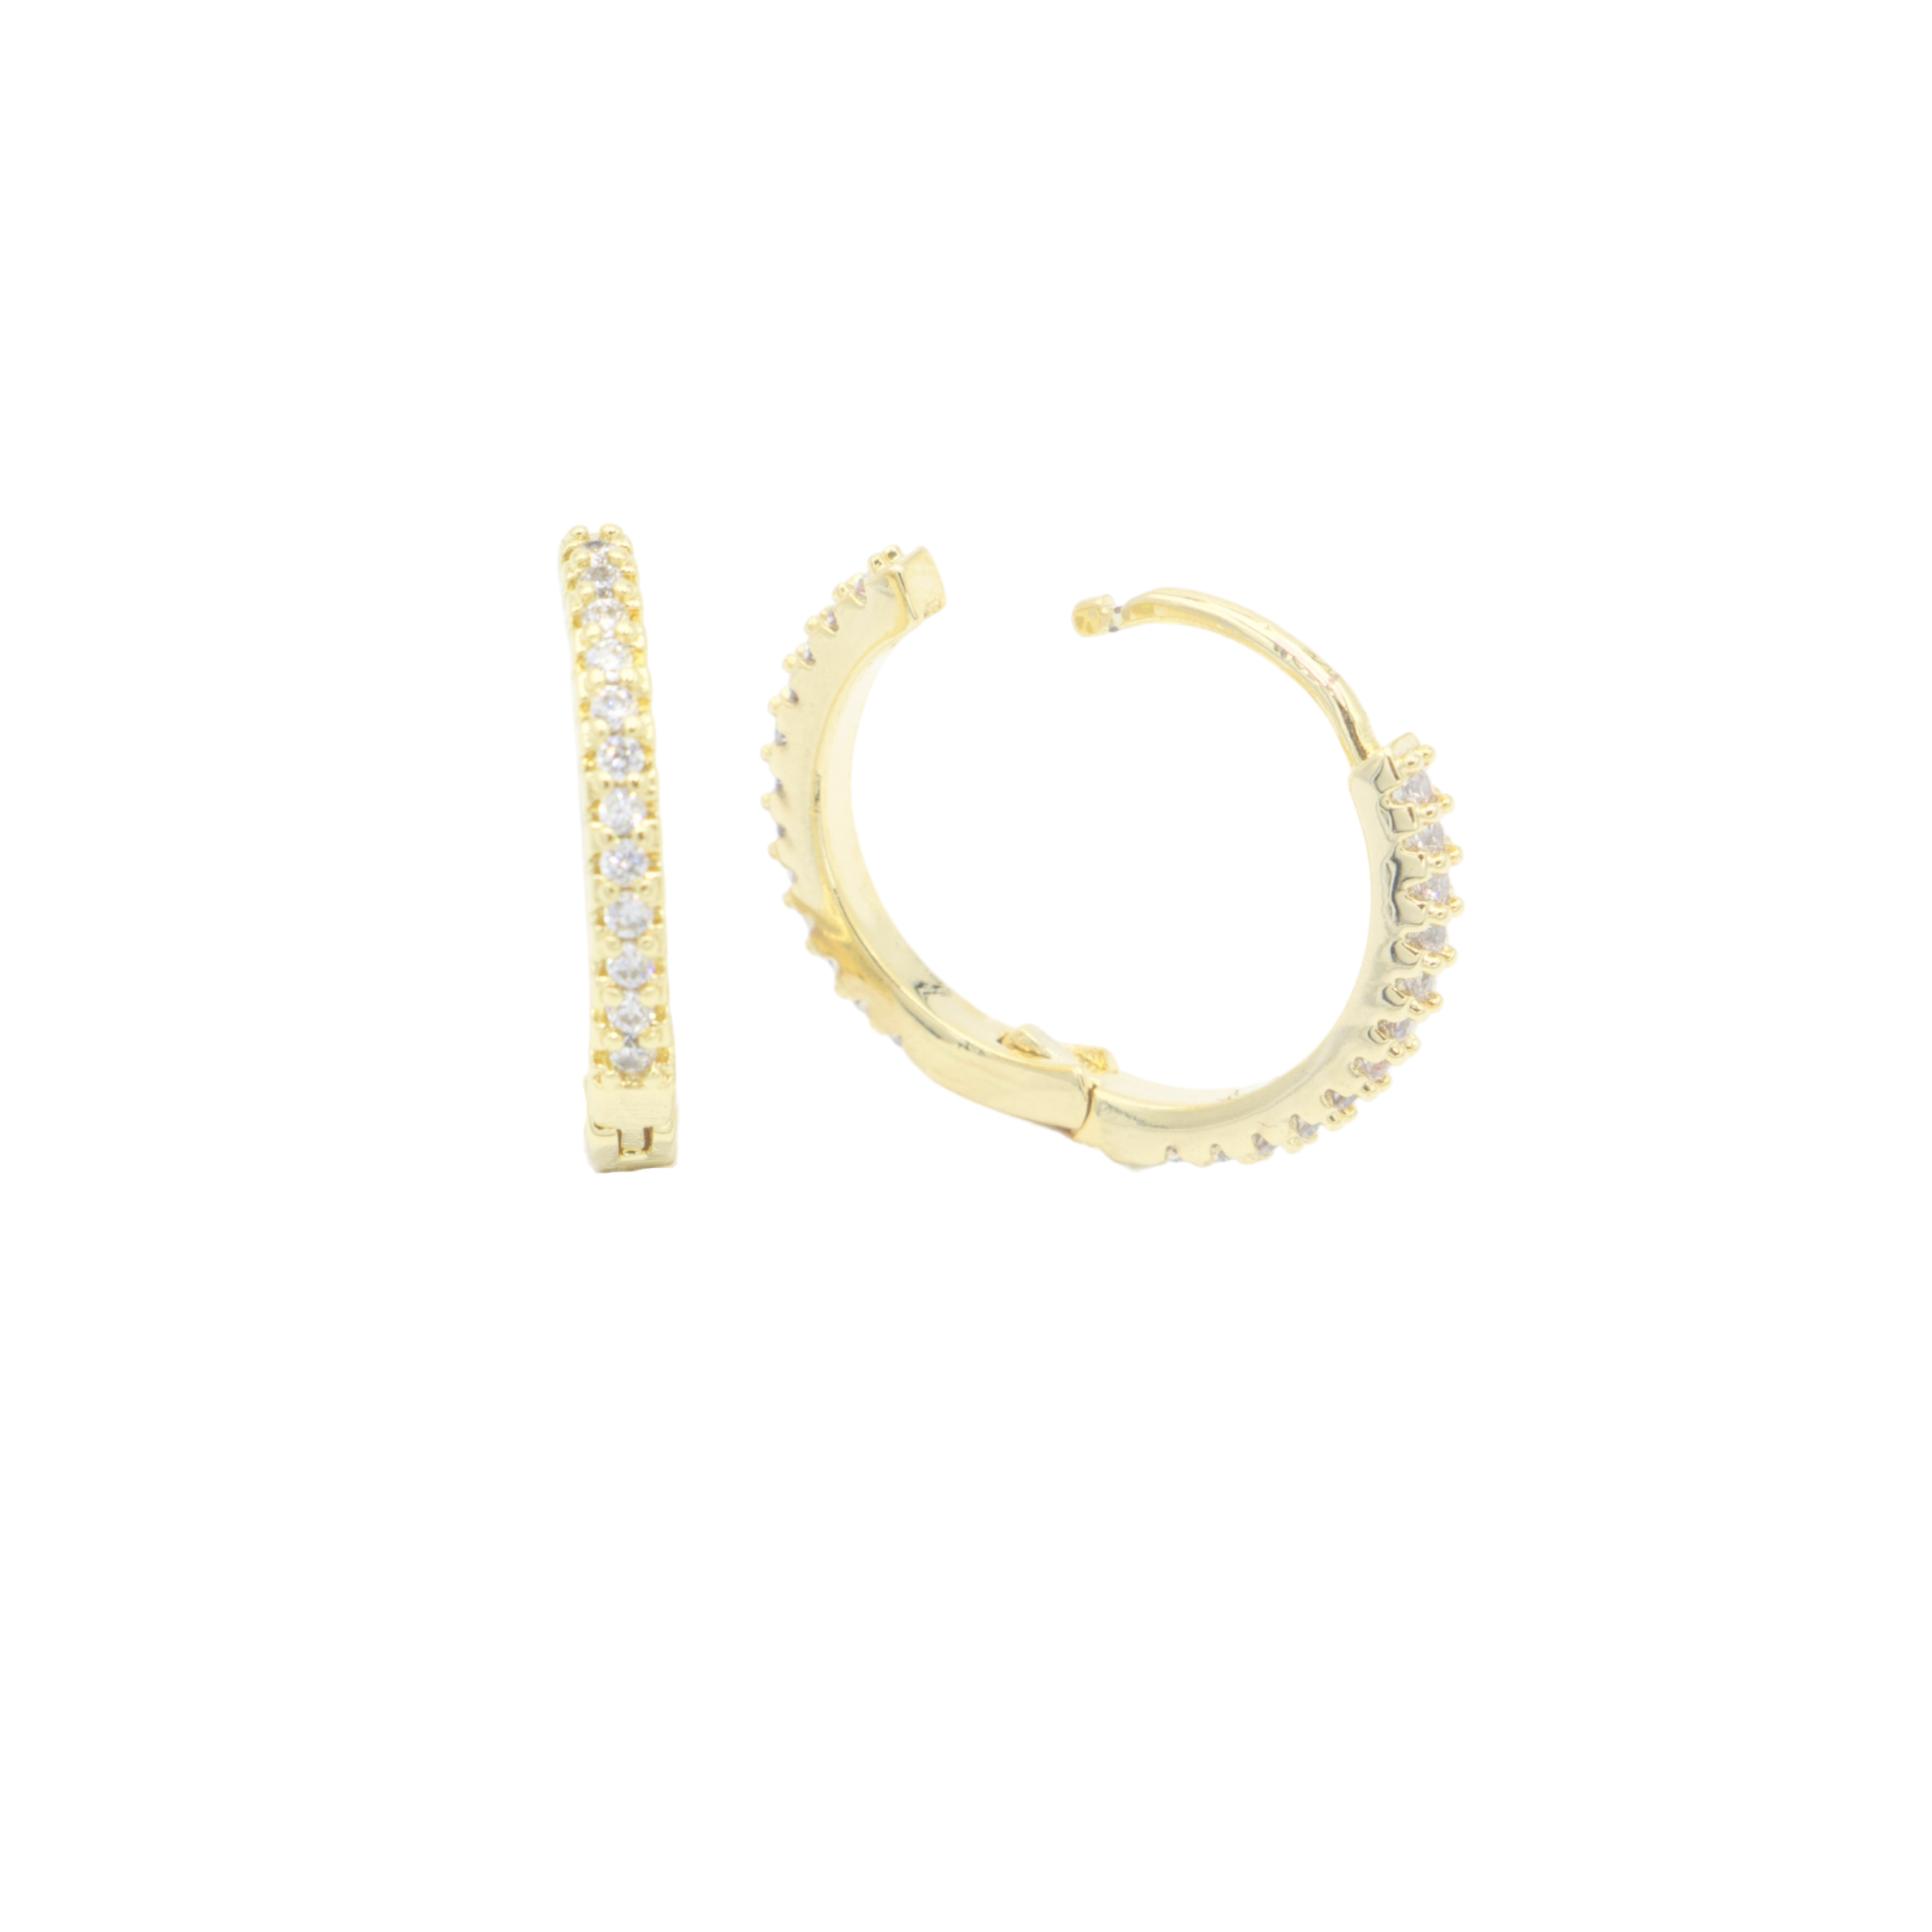 AW Boutique's gold filled micro pave cubic zirconia huggies (15mm diameter) are the perfect earring to wear alone or layered with our other earrings across multiple piercings.